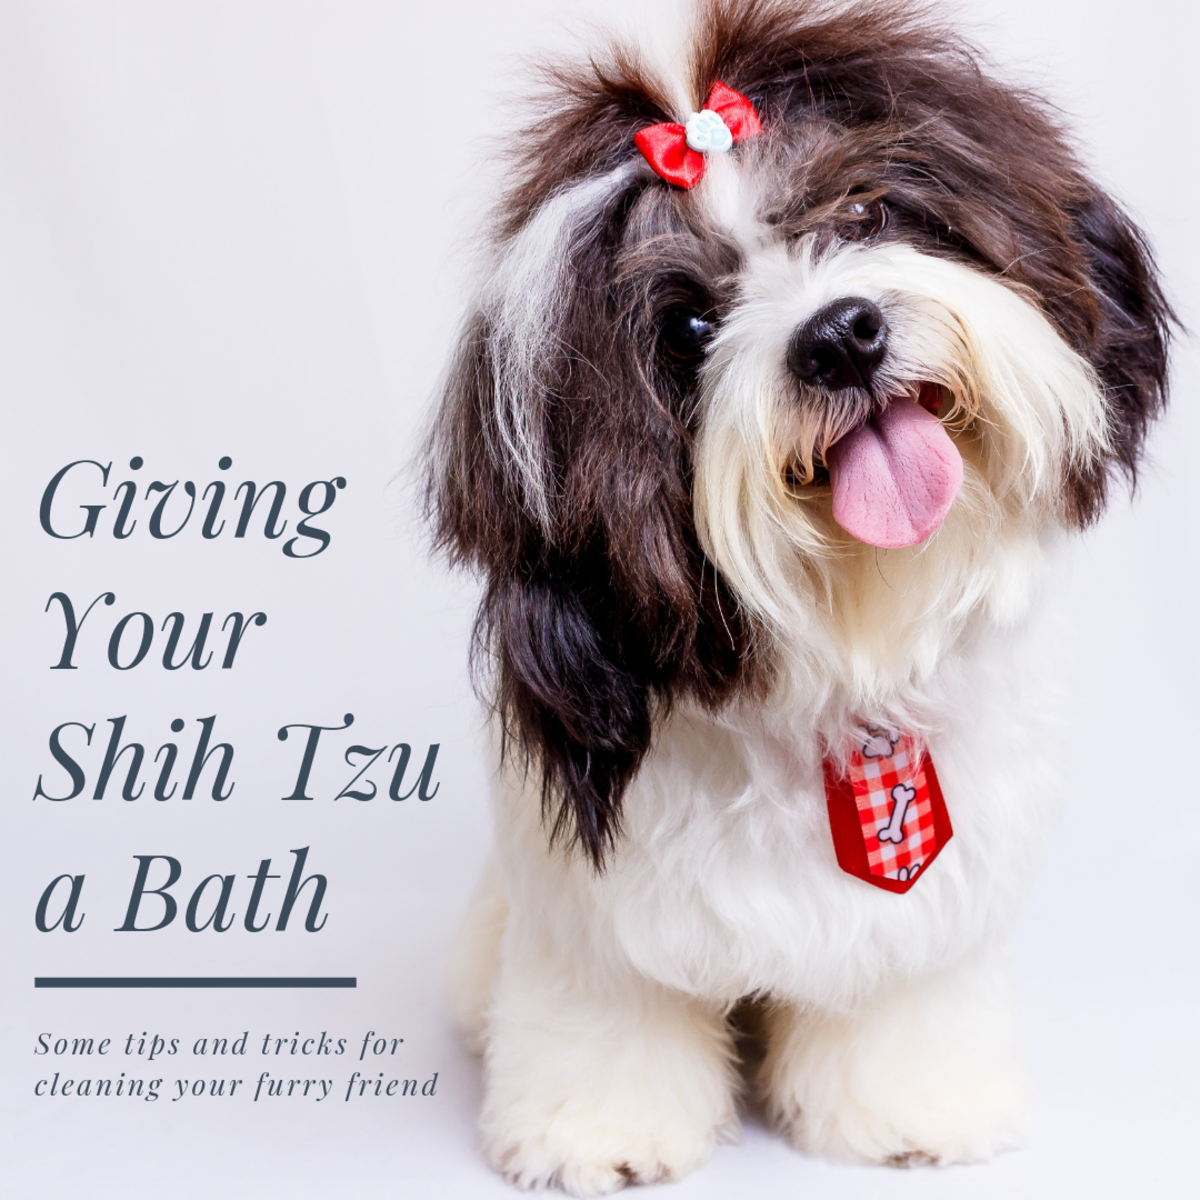 This article will provide some information and pointers on how to properly bathe and pamper your Shih Tzu.